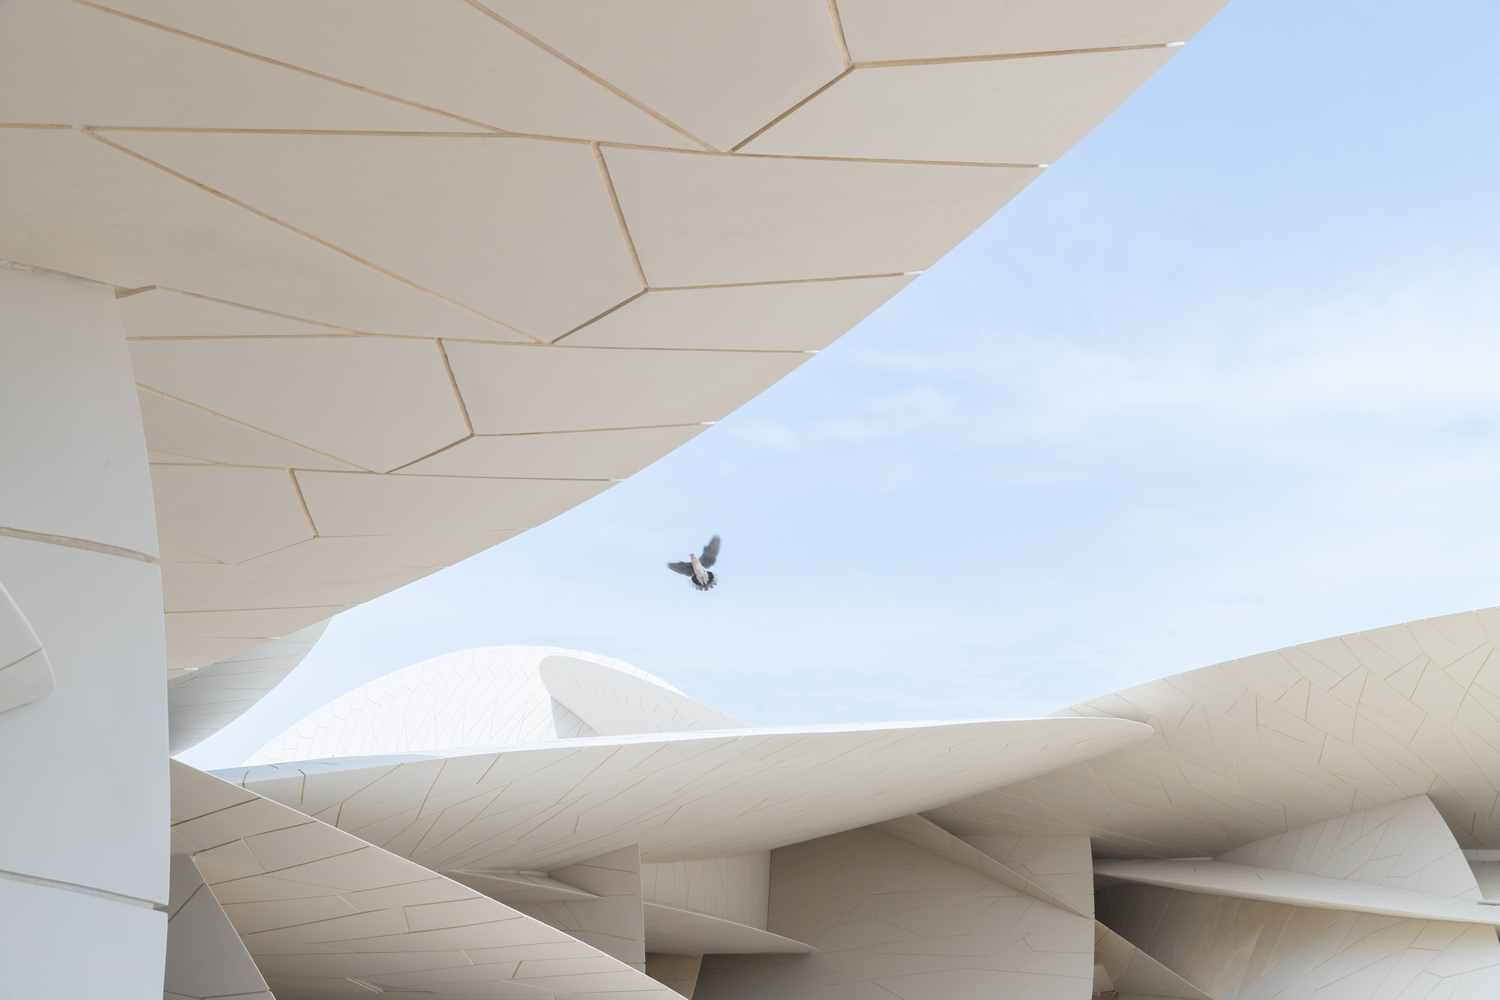 Jean Nouvel's National Museum of Qatar - IGS Magazine - Iwan Baan - 2